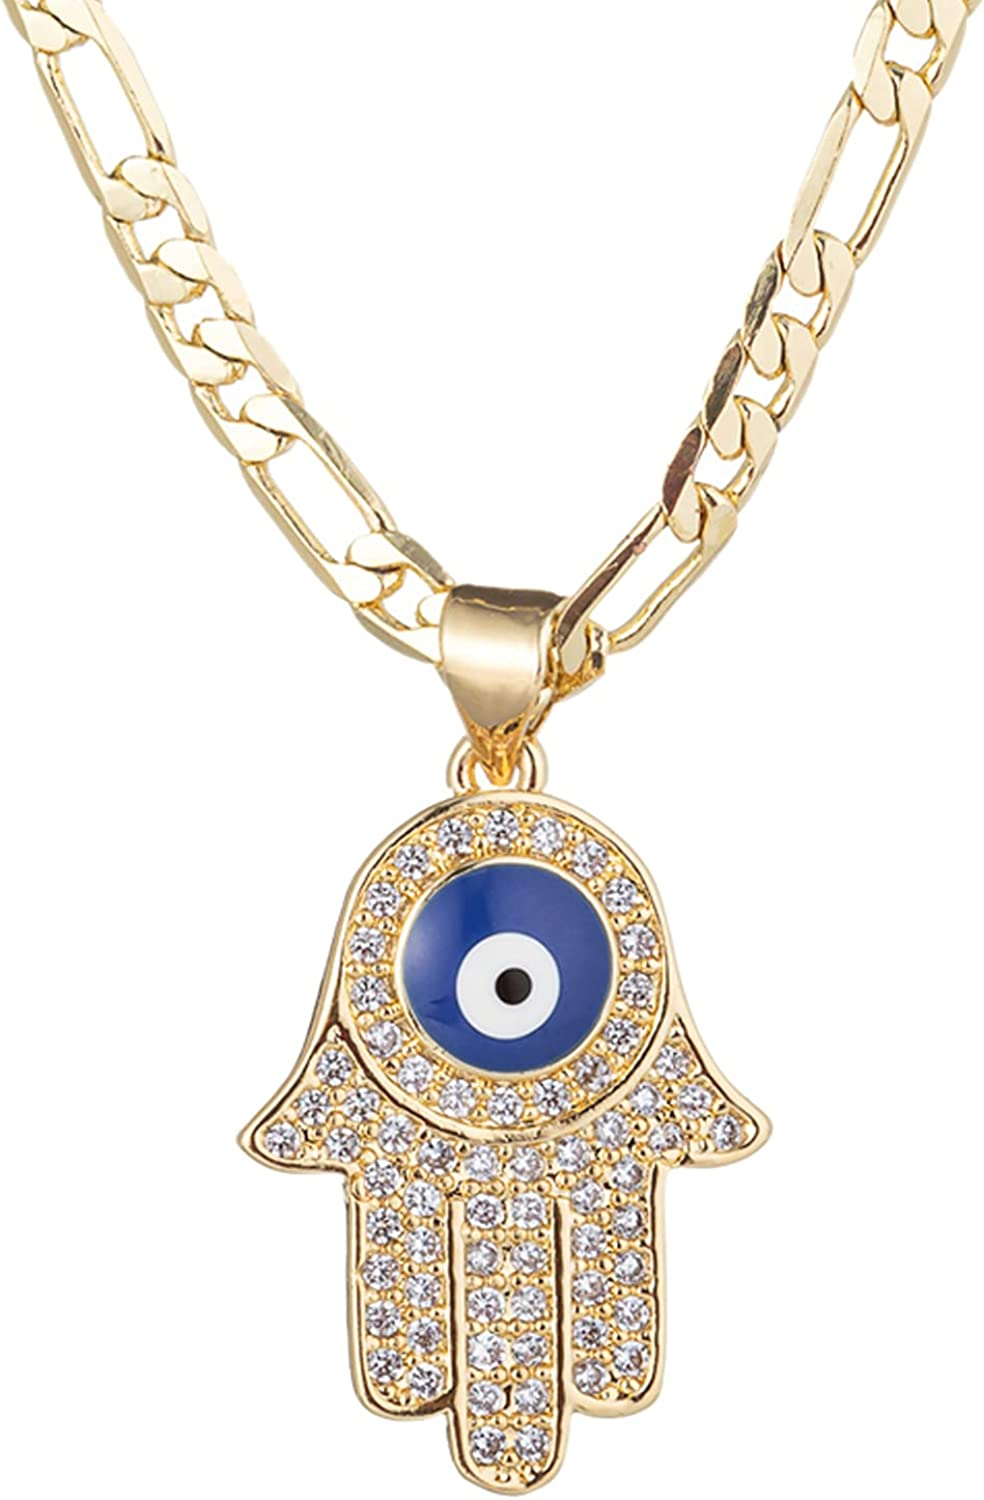 14K Gold Plated Evil Eye Hamsa Hand Necklace for Women Men | Gold Cubic Zirconia Inlay Evil Eye Pendant Necklace | 3mm Figaro Chain Necklace 18/22 inches